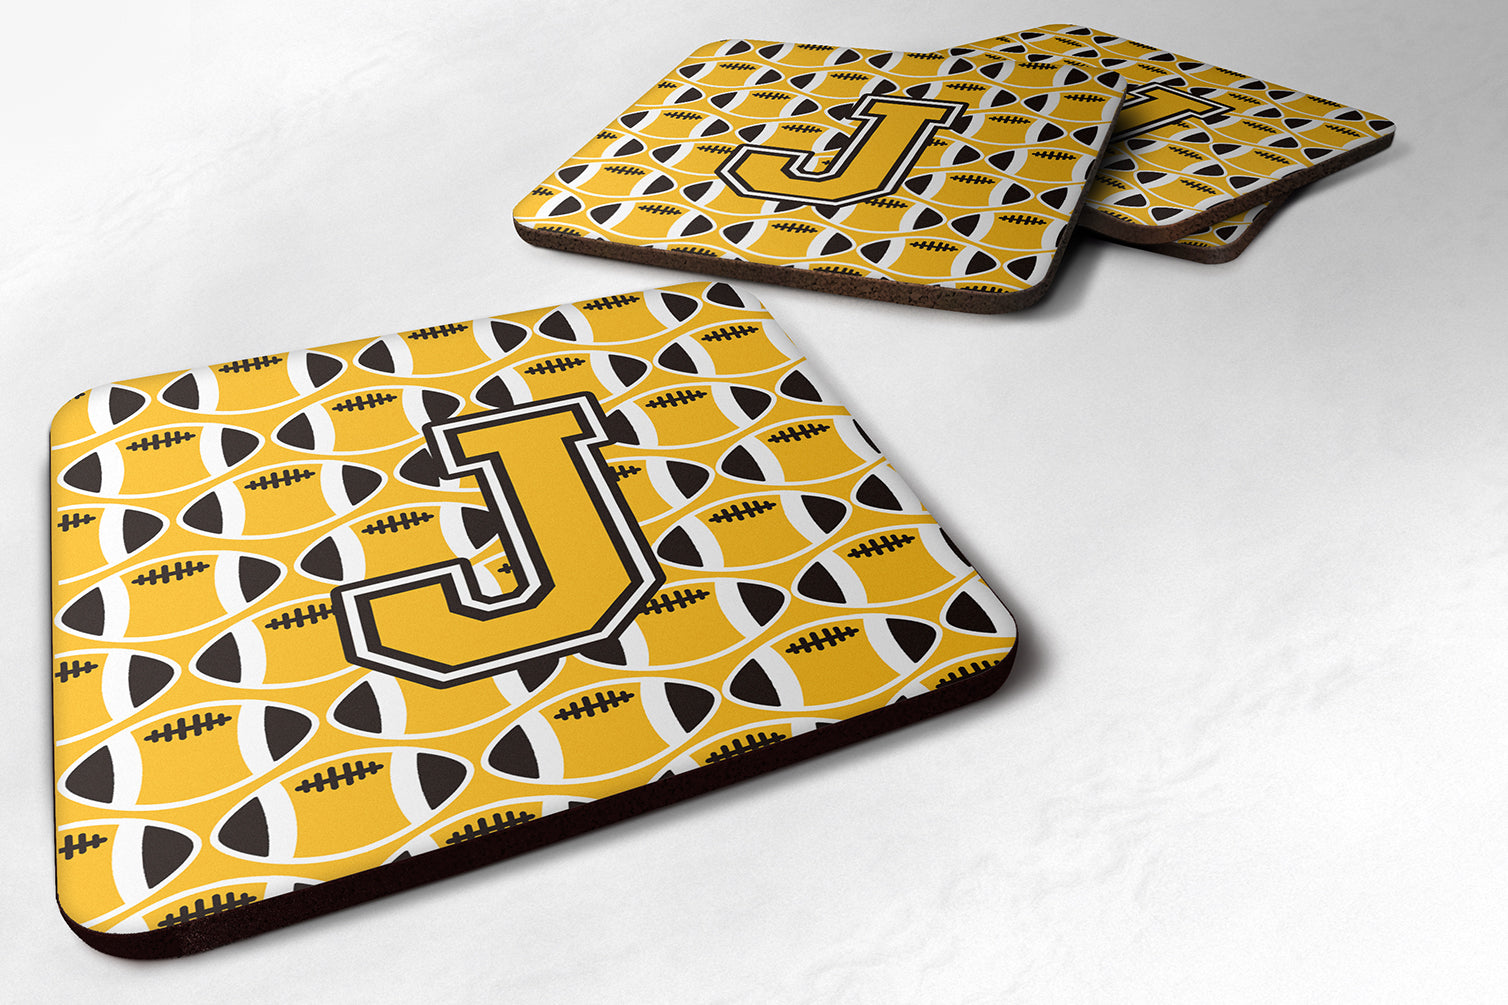 Set of 4 Letter J Football Black, Old Gold and White Foam Coasters Set of 4 CJ1080-JFC by Caroline's Treasures